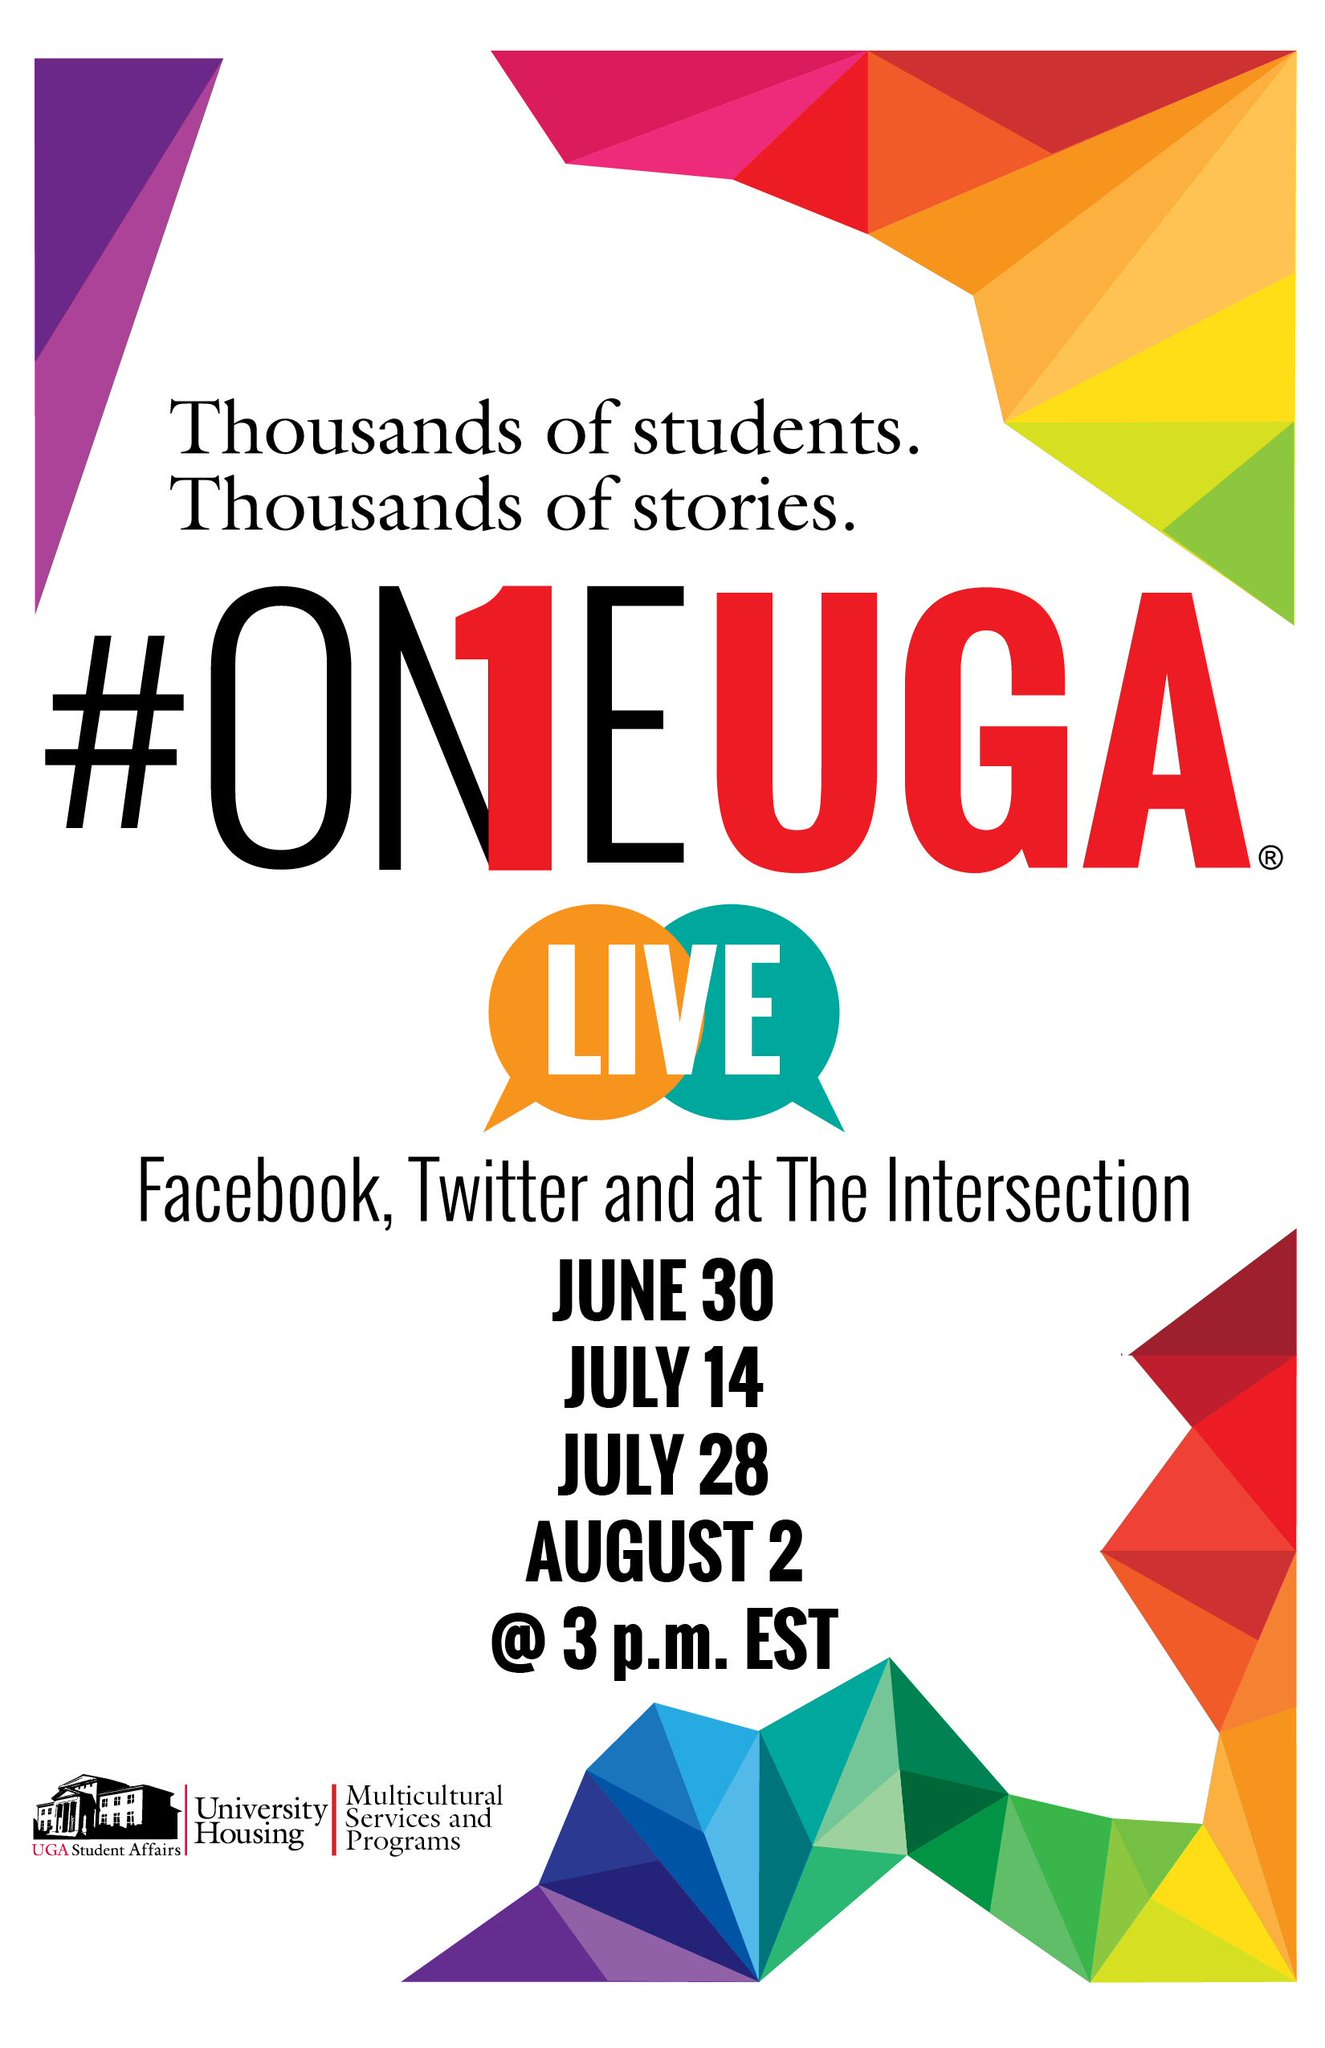 Calling all #UGA students & alumni! The #OneUGA chat is THIS Thurs & next Tues at 3 p.m. Share your #UGA experience. https://t.co/aaS9h5q98p